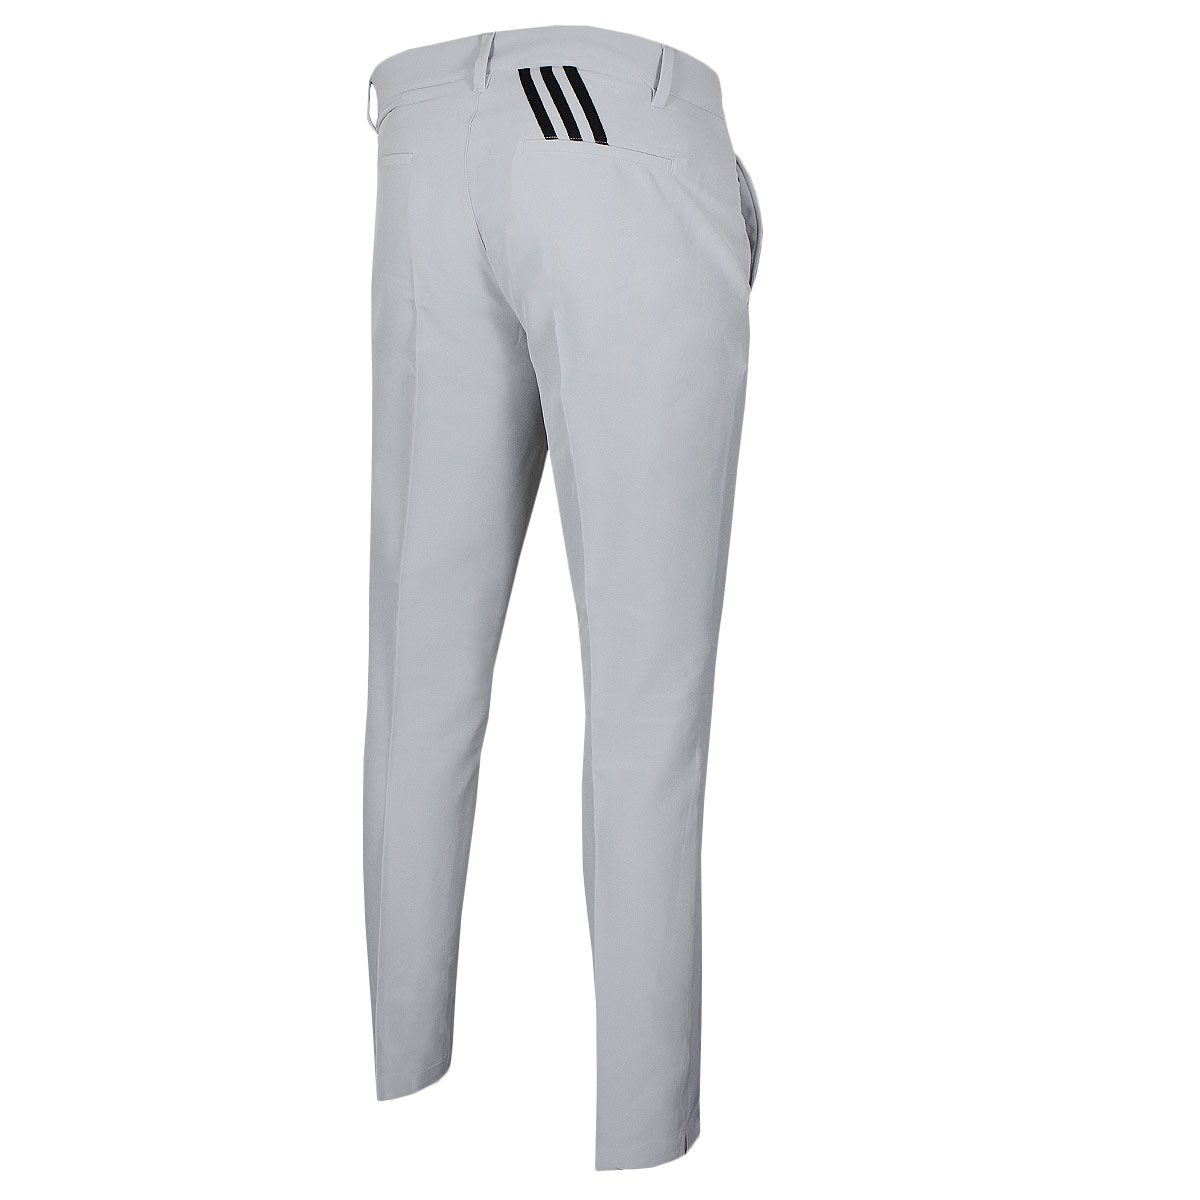 adidas-Golf-Mens-Ultimate-3-Stripes-Stretch-Pant-Trousers-44-OFF-RRP Indexbild 28